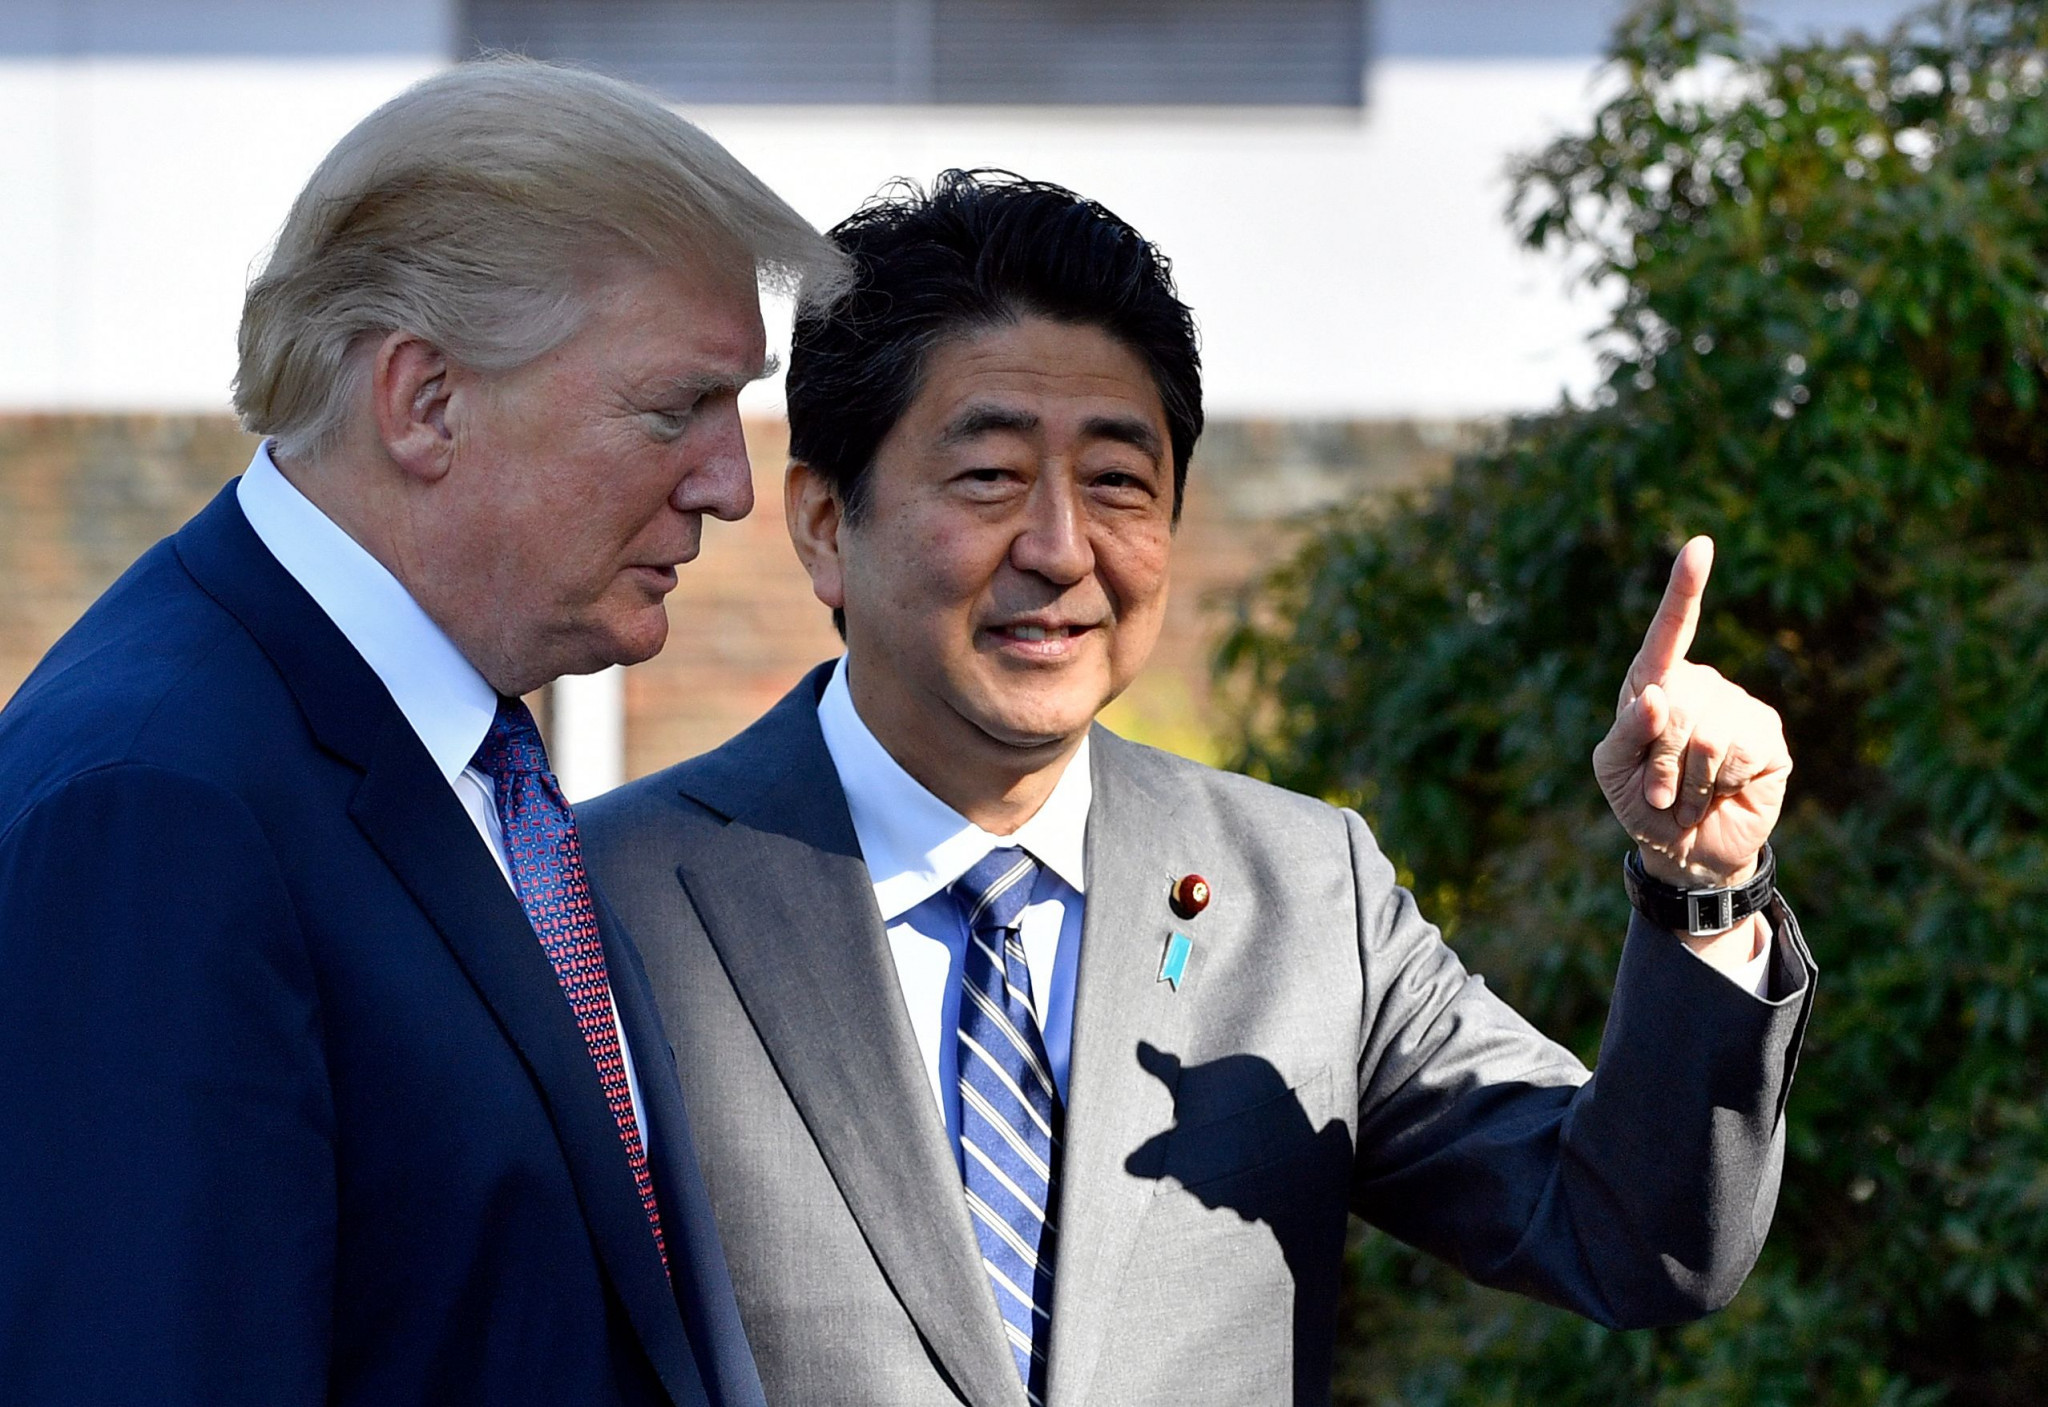 In November 2017, United States President Donald Trump and Japanese Prime Minister Shinzō Abe played a round of golf at the Kasumigaseki Country Club ©Getty Images